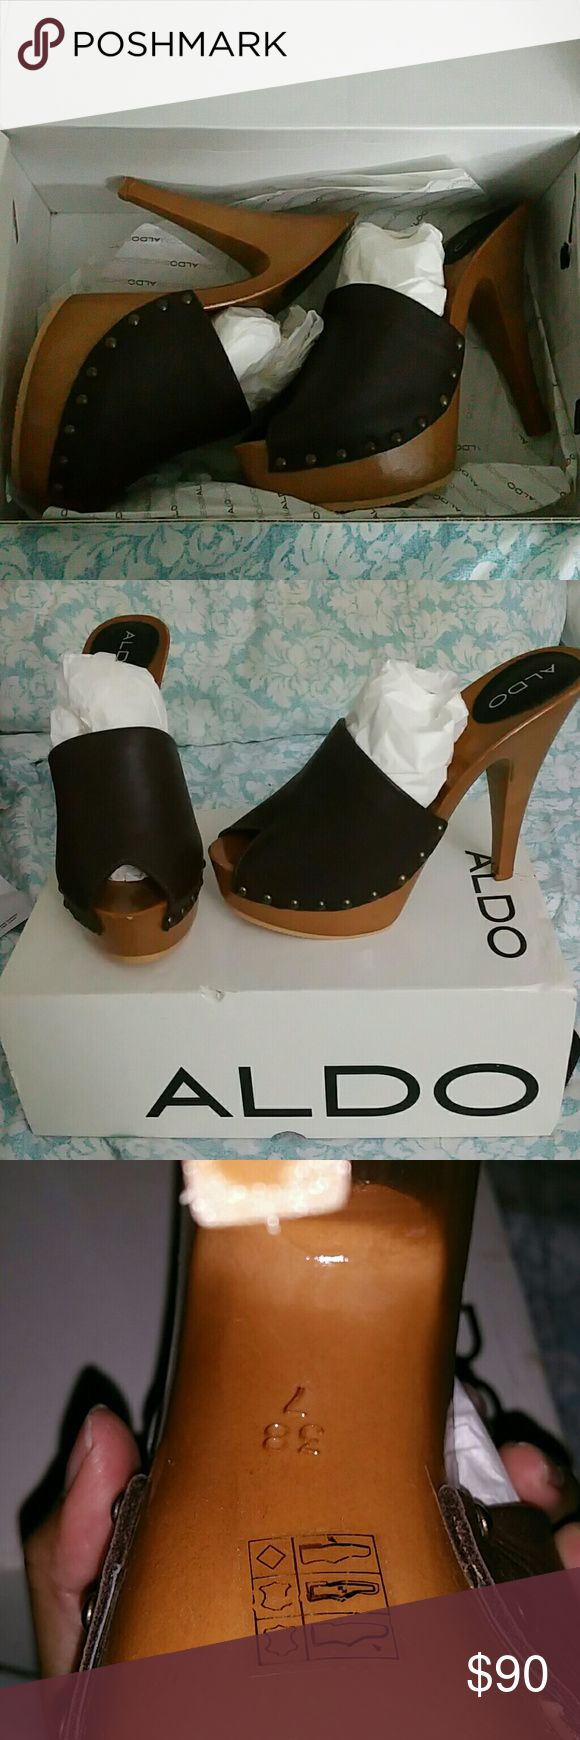 Aldo heels Toe peep, wood look heels Aldo Shoes Mules & Clogs